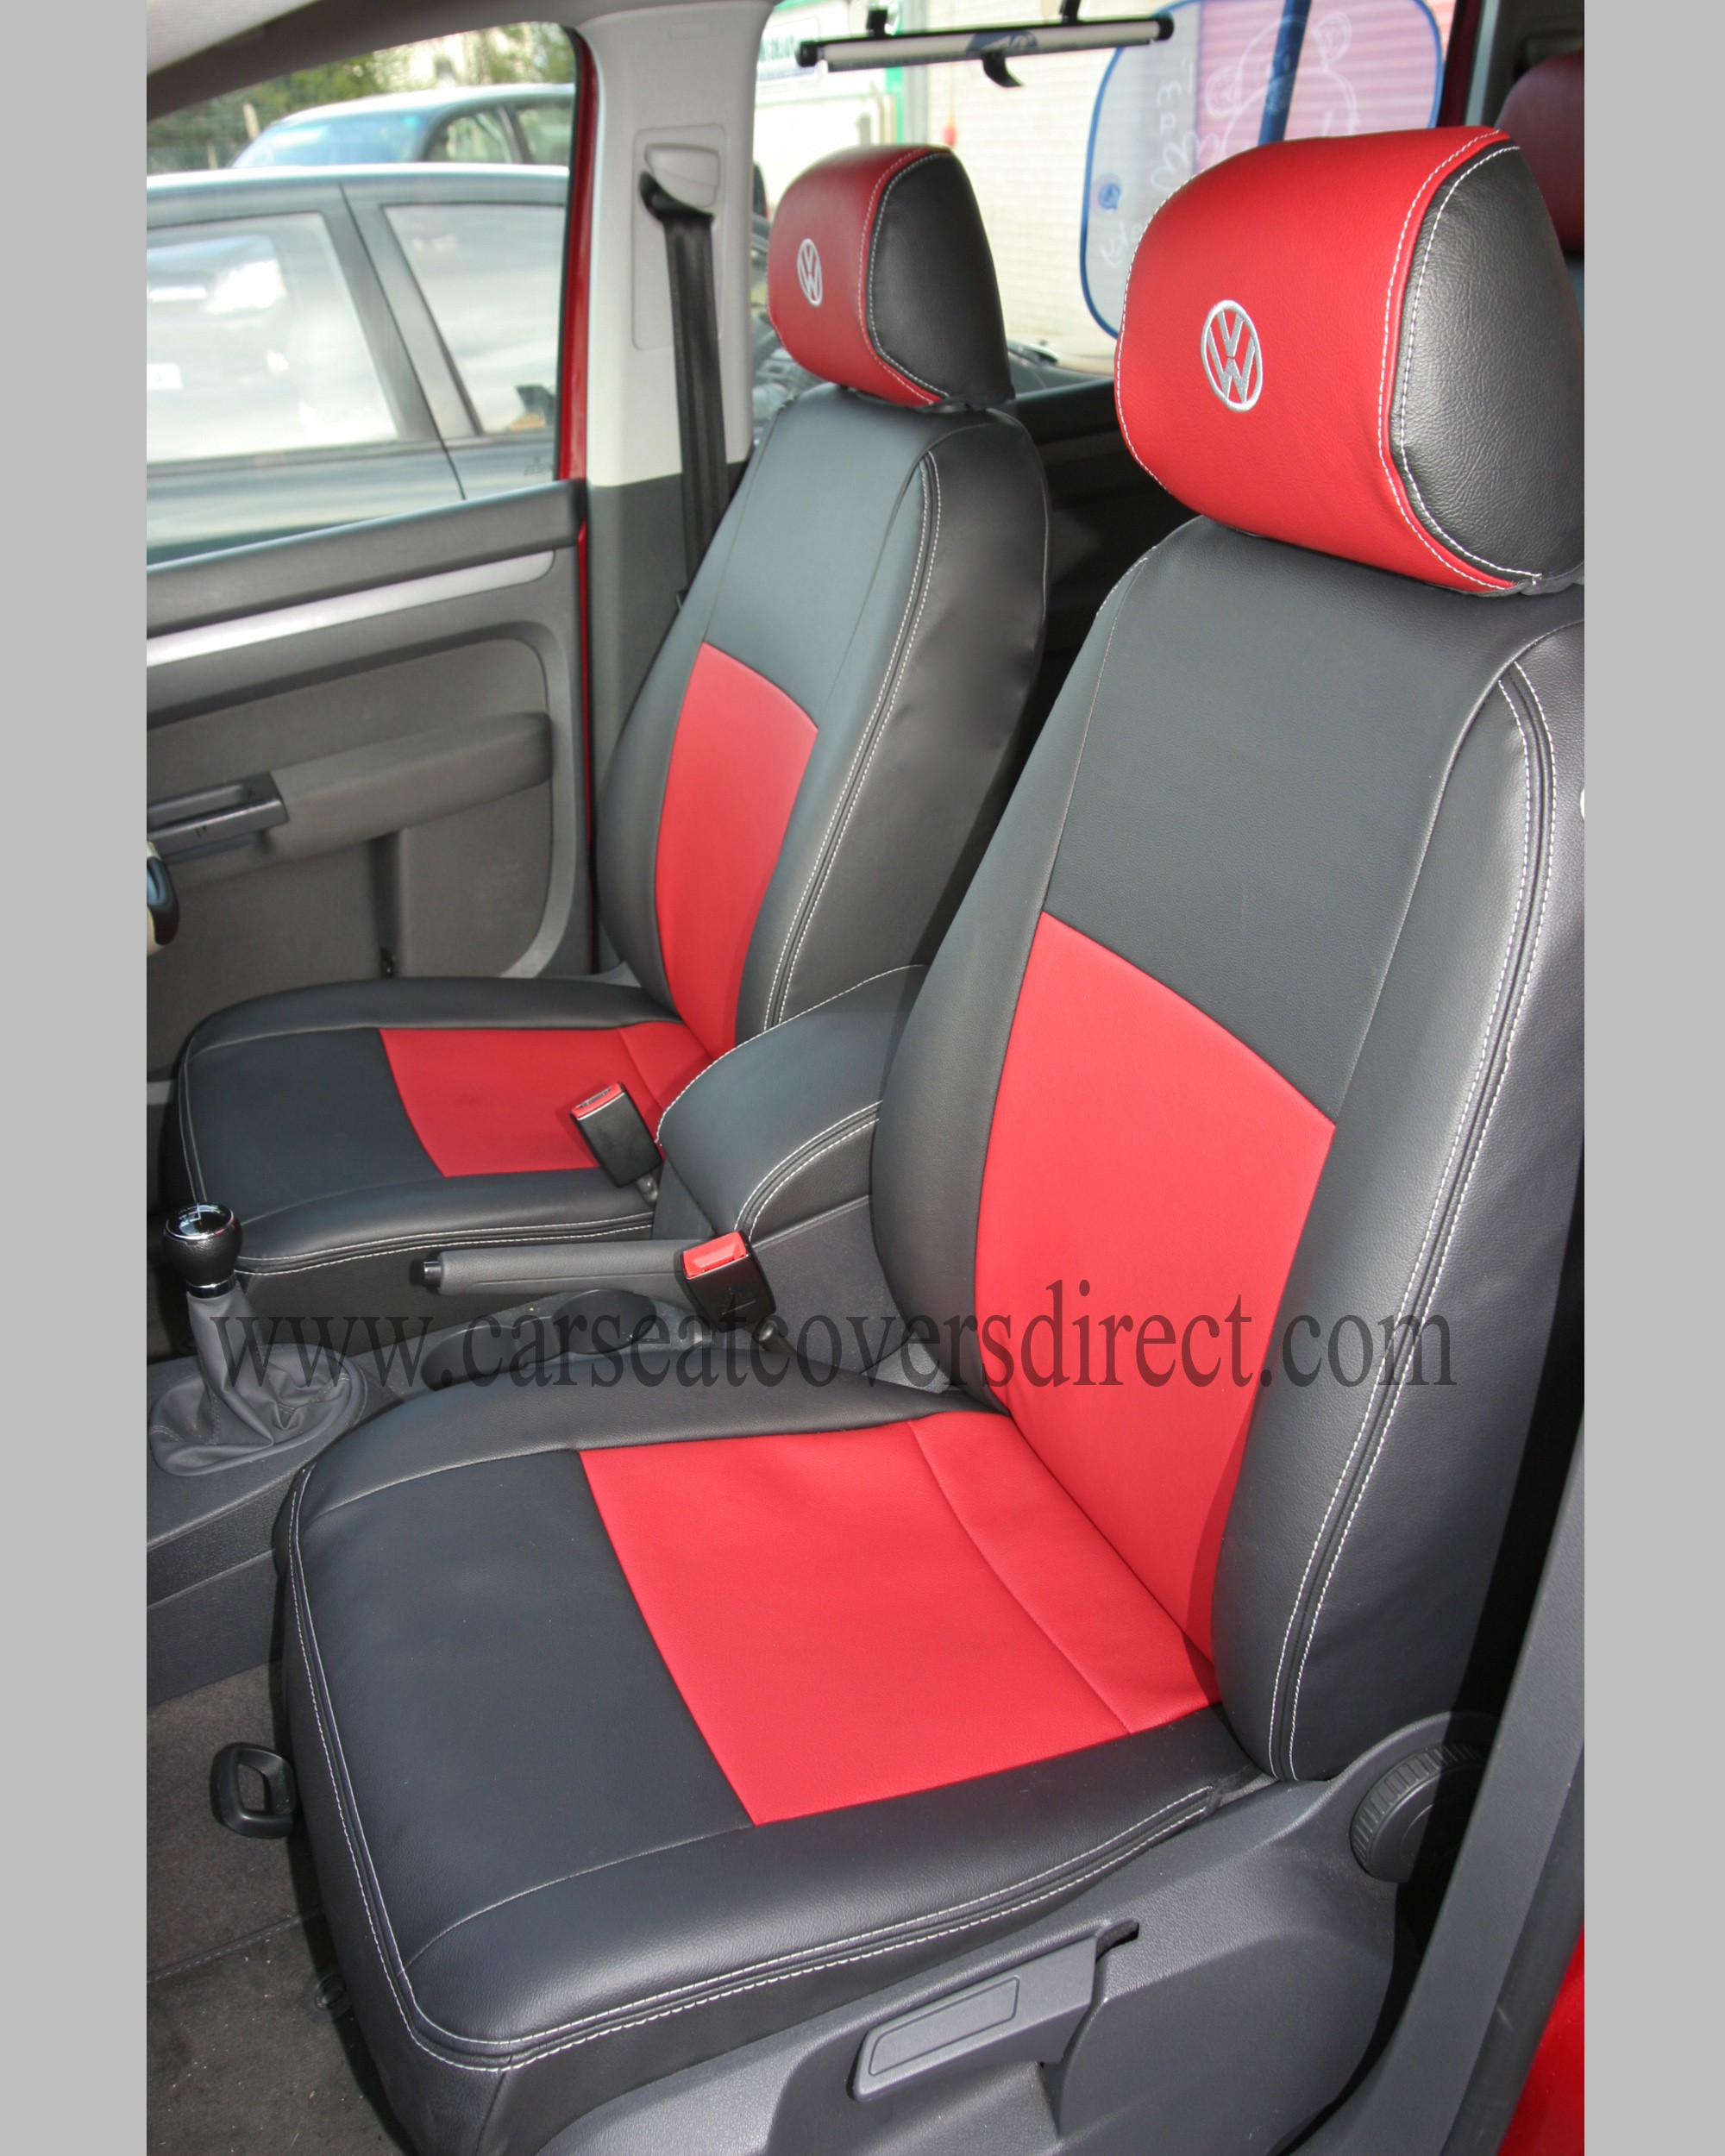 volkswagen vw touran black red seat covers 7 seats custom tailored seat covers car seat. Black Bedroom Furniture Sets. Home Design Ideas